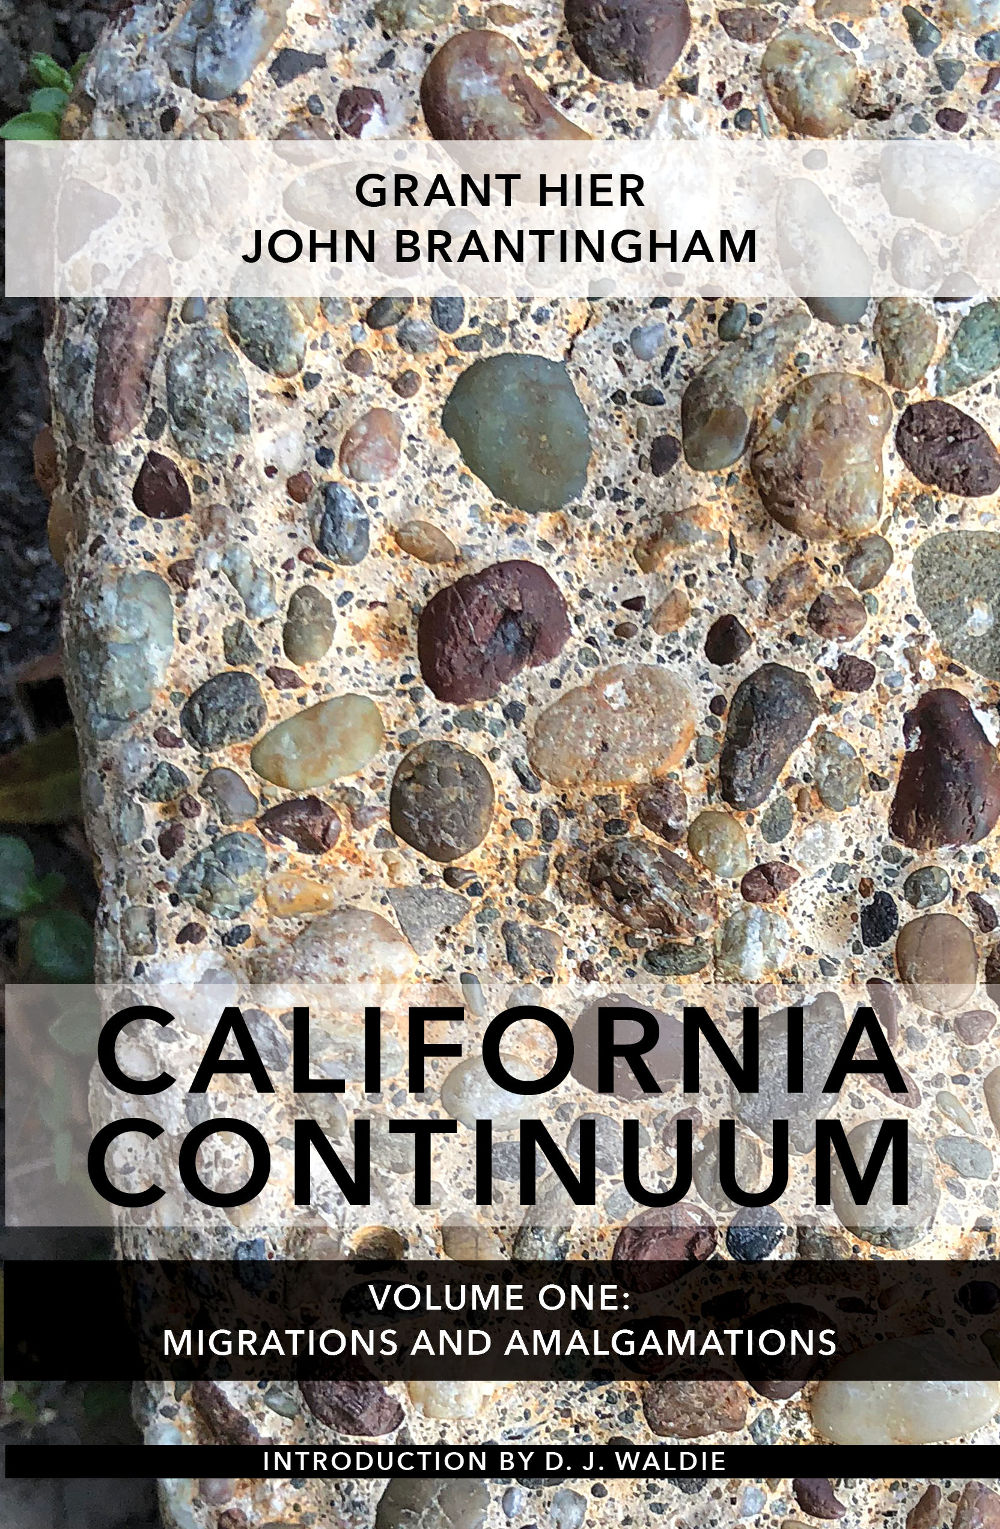 California Continuum, Volume 1: Migrations and Amalgamations